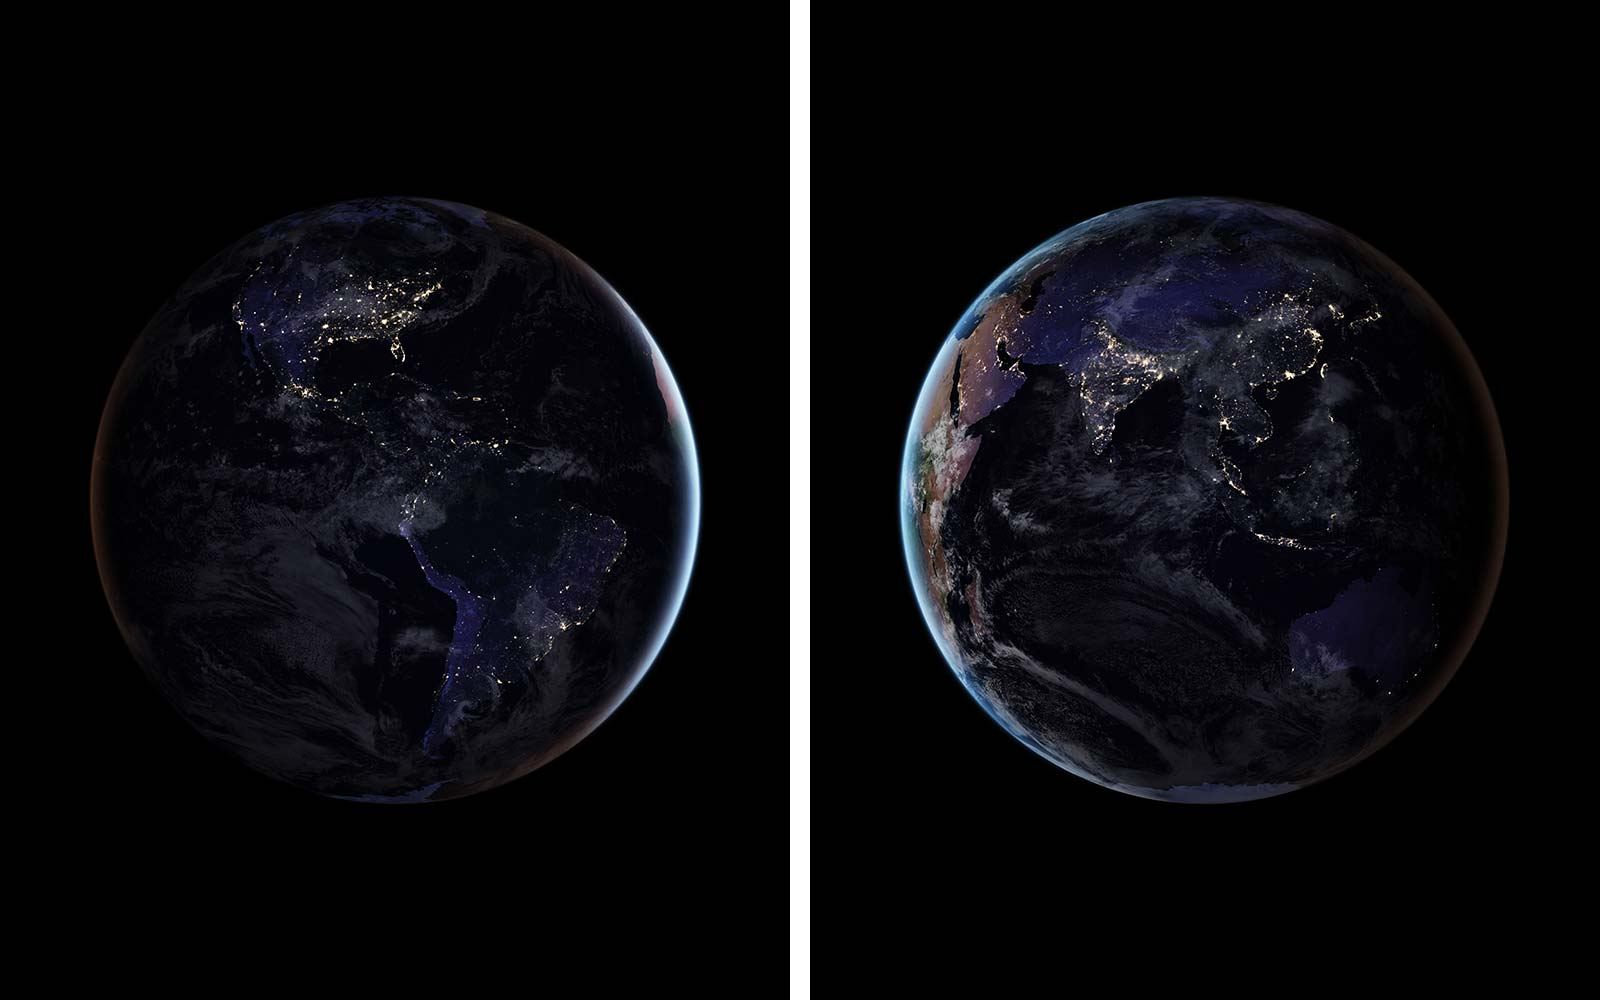 NASA's New Photos of Earth Lit up at Night Will Take Your Breath Away